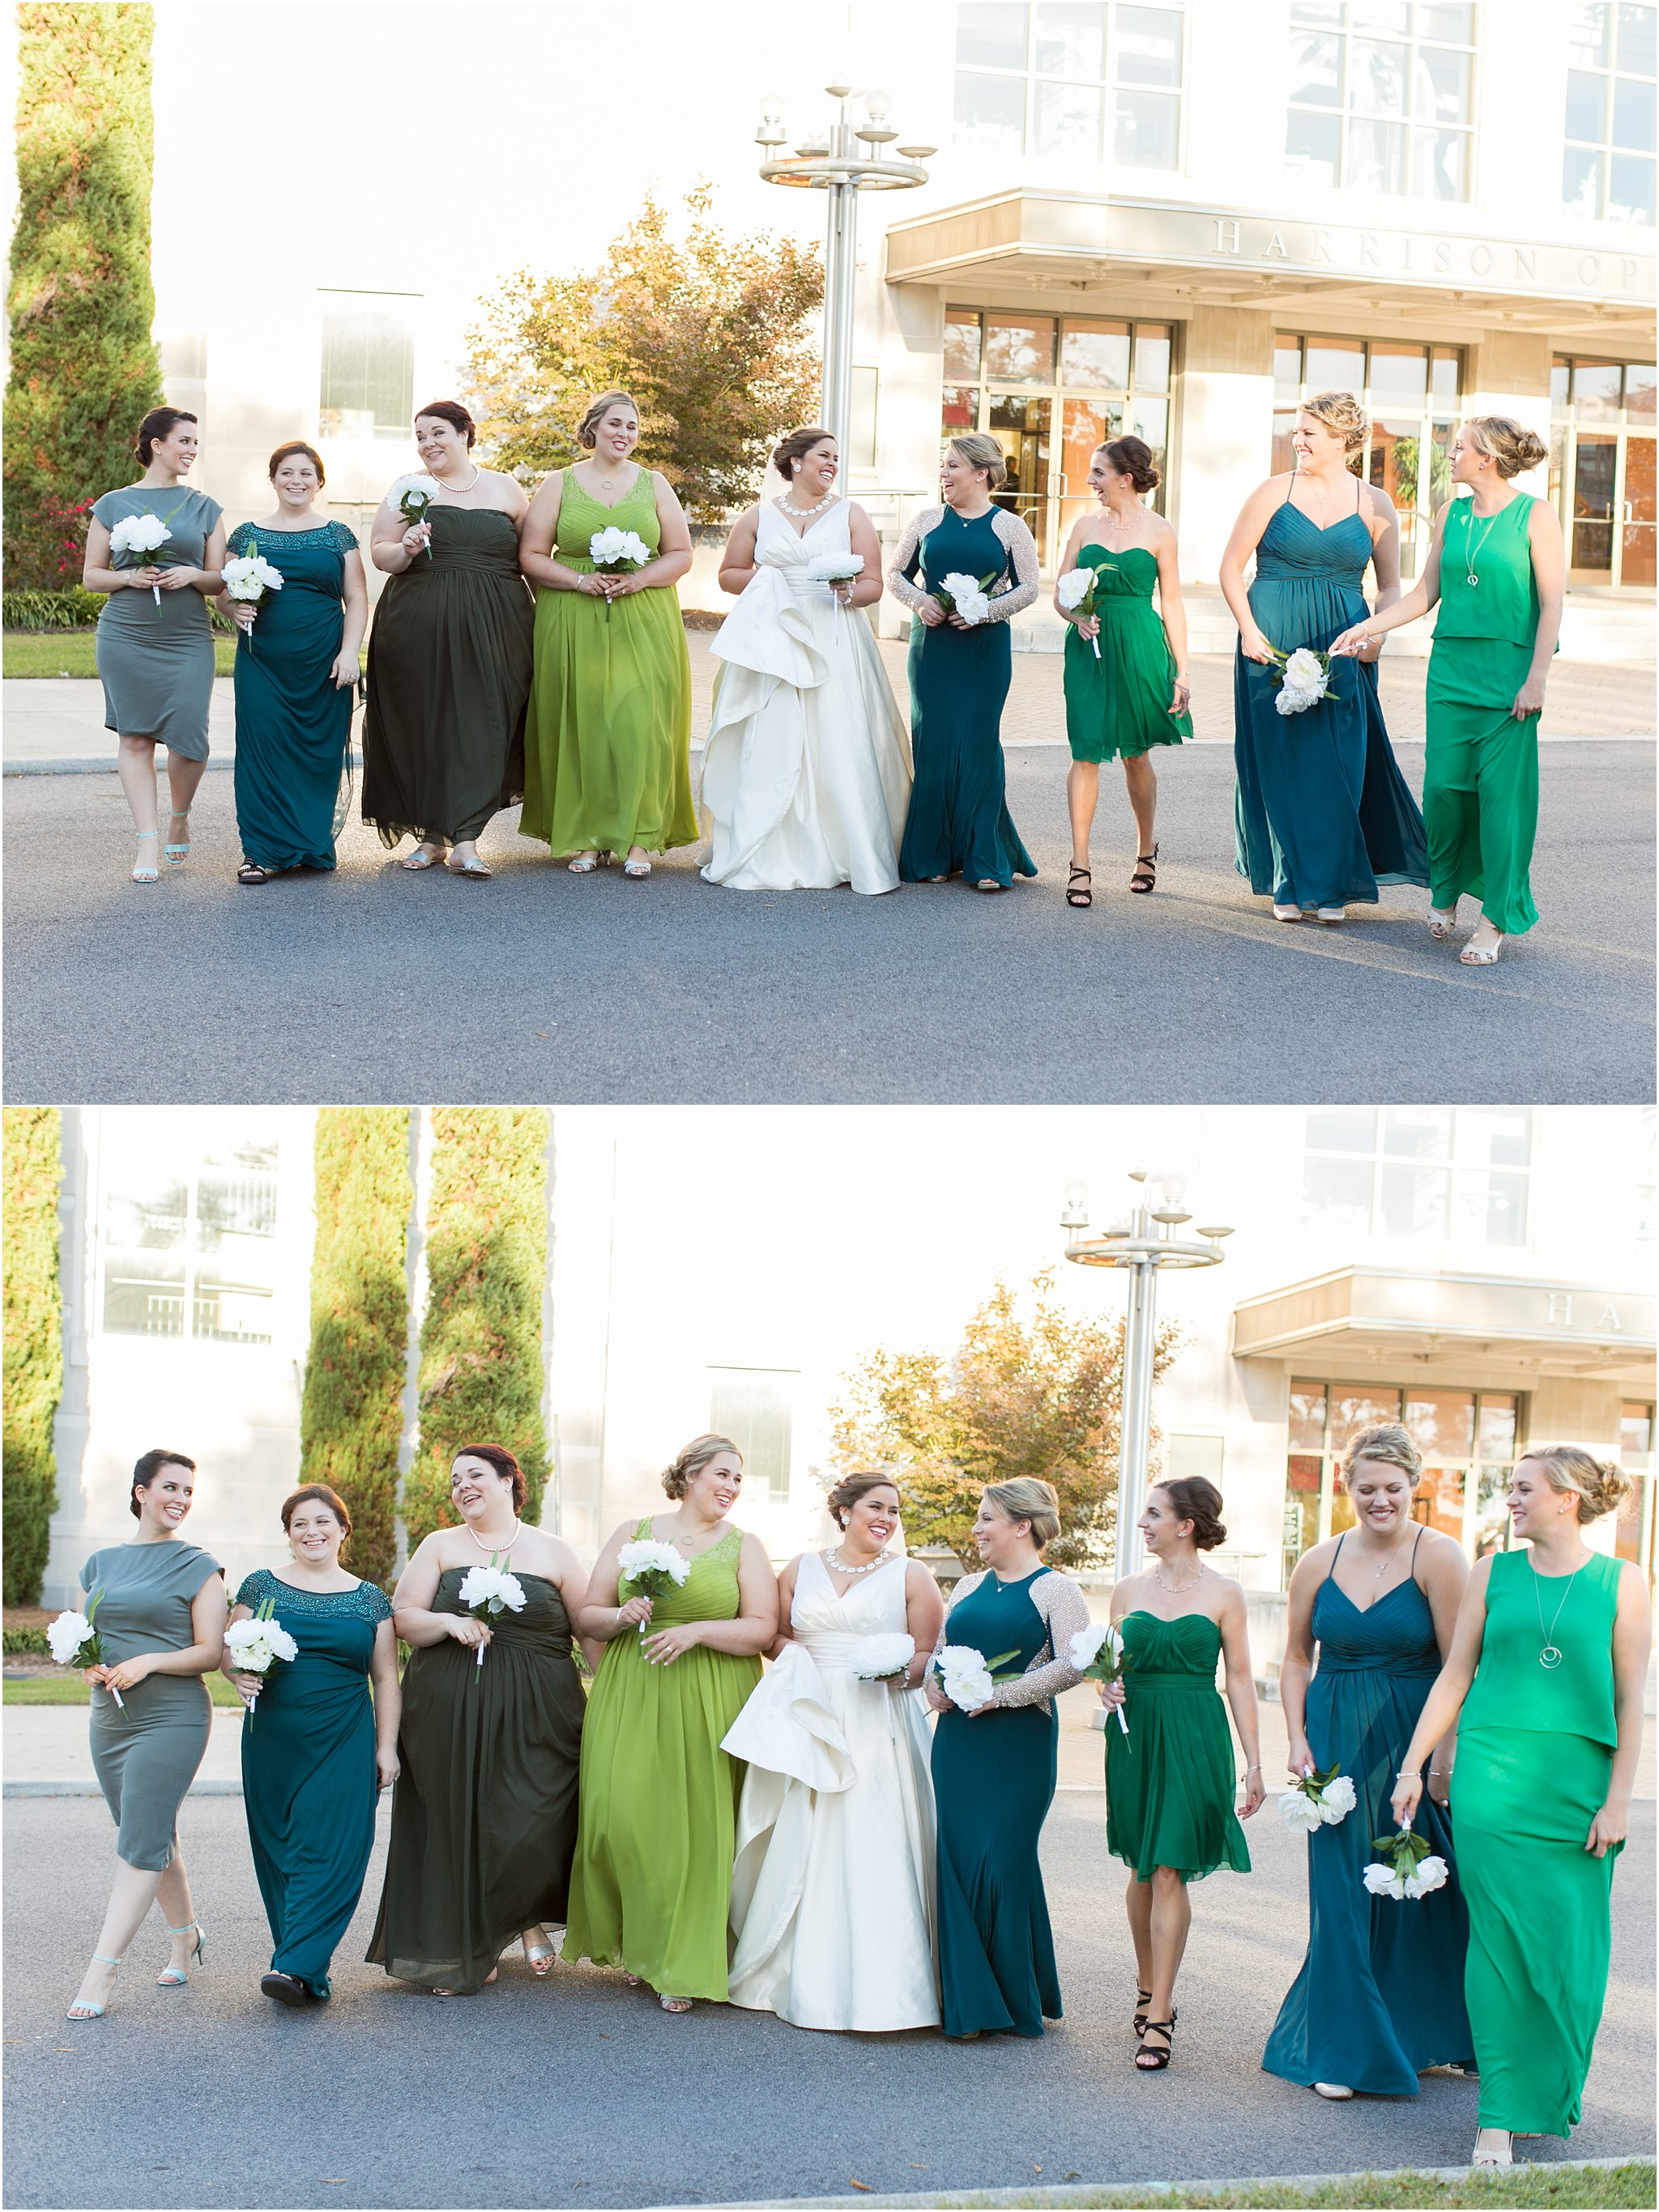 va_jessica_ryan_photography_virginia_wedding_norfolk_harrison_opera_house_norfolk_arts_district_portraits_3802